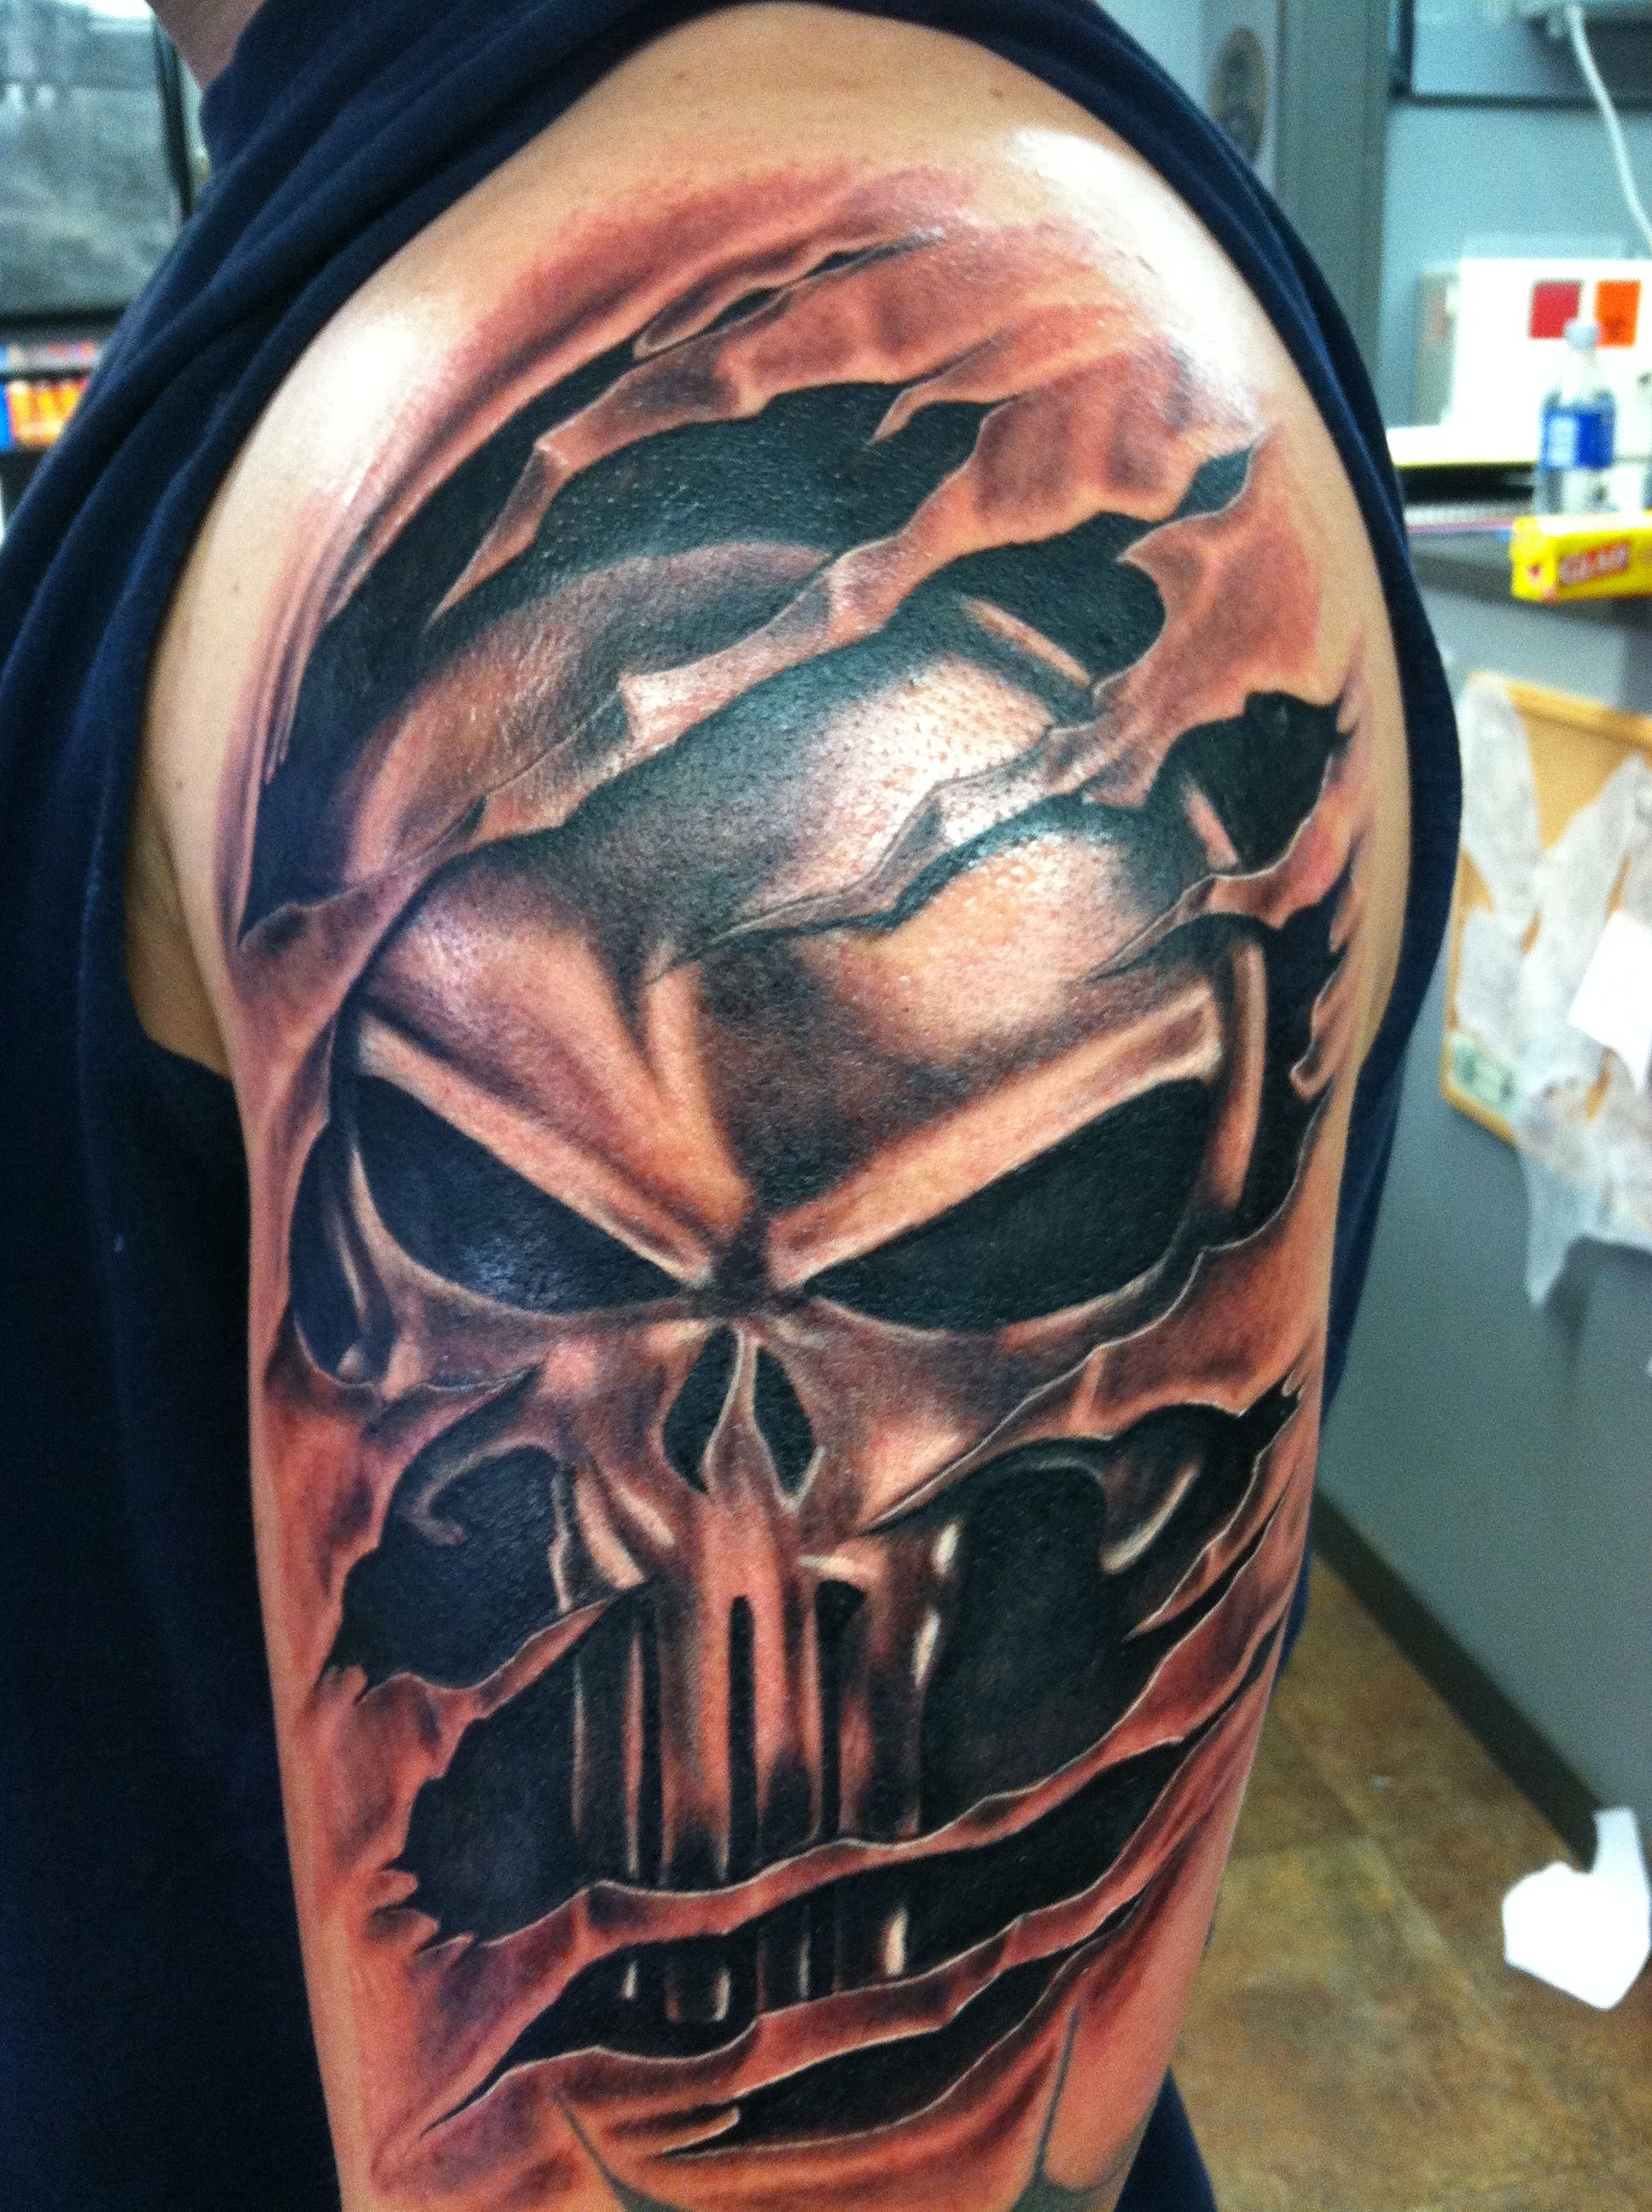 Punisher Tattoo Marvel Tattoos Shoulder Cover Up Tattoos Punisher Tattoo